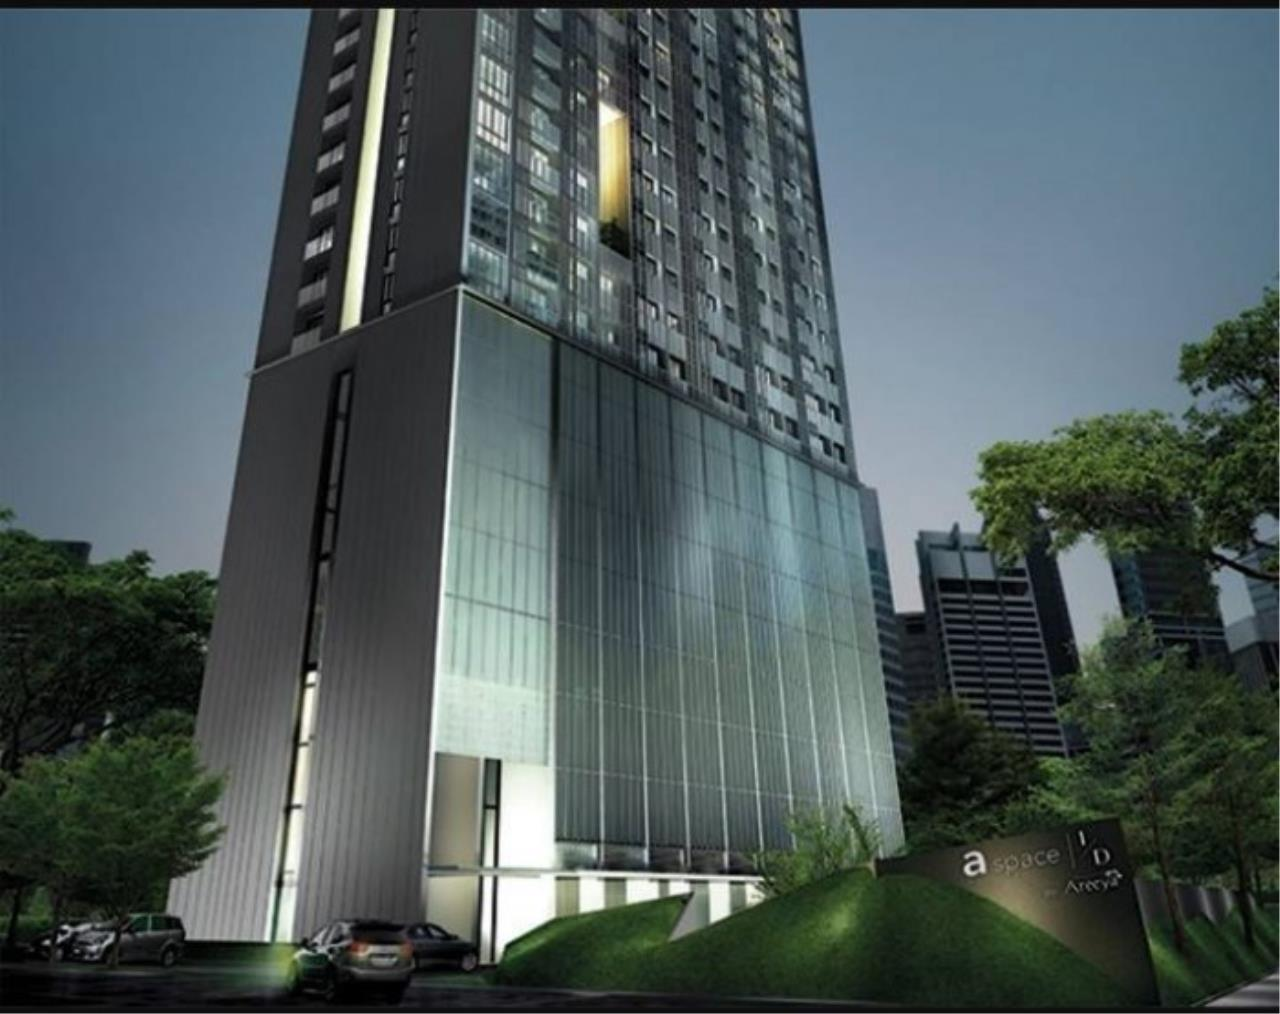 Bright Condos Agency's A Space I.D. Asoke - Ratchada 1